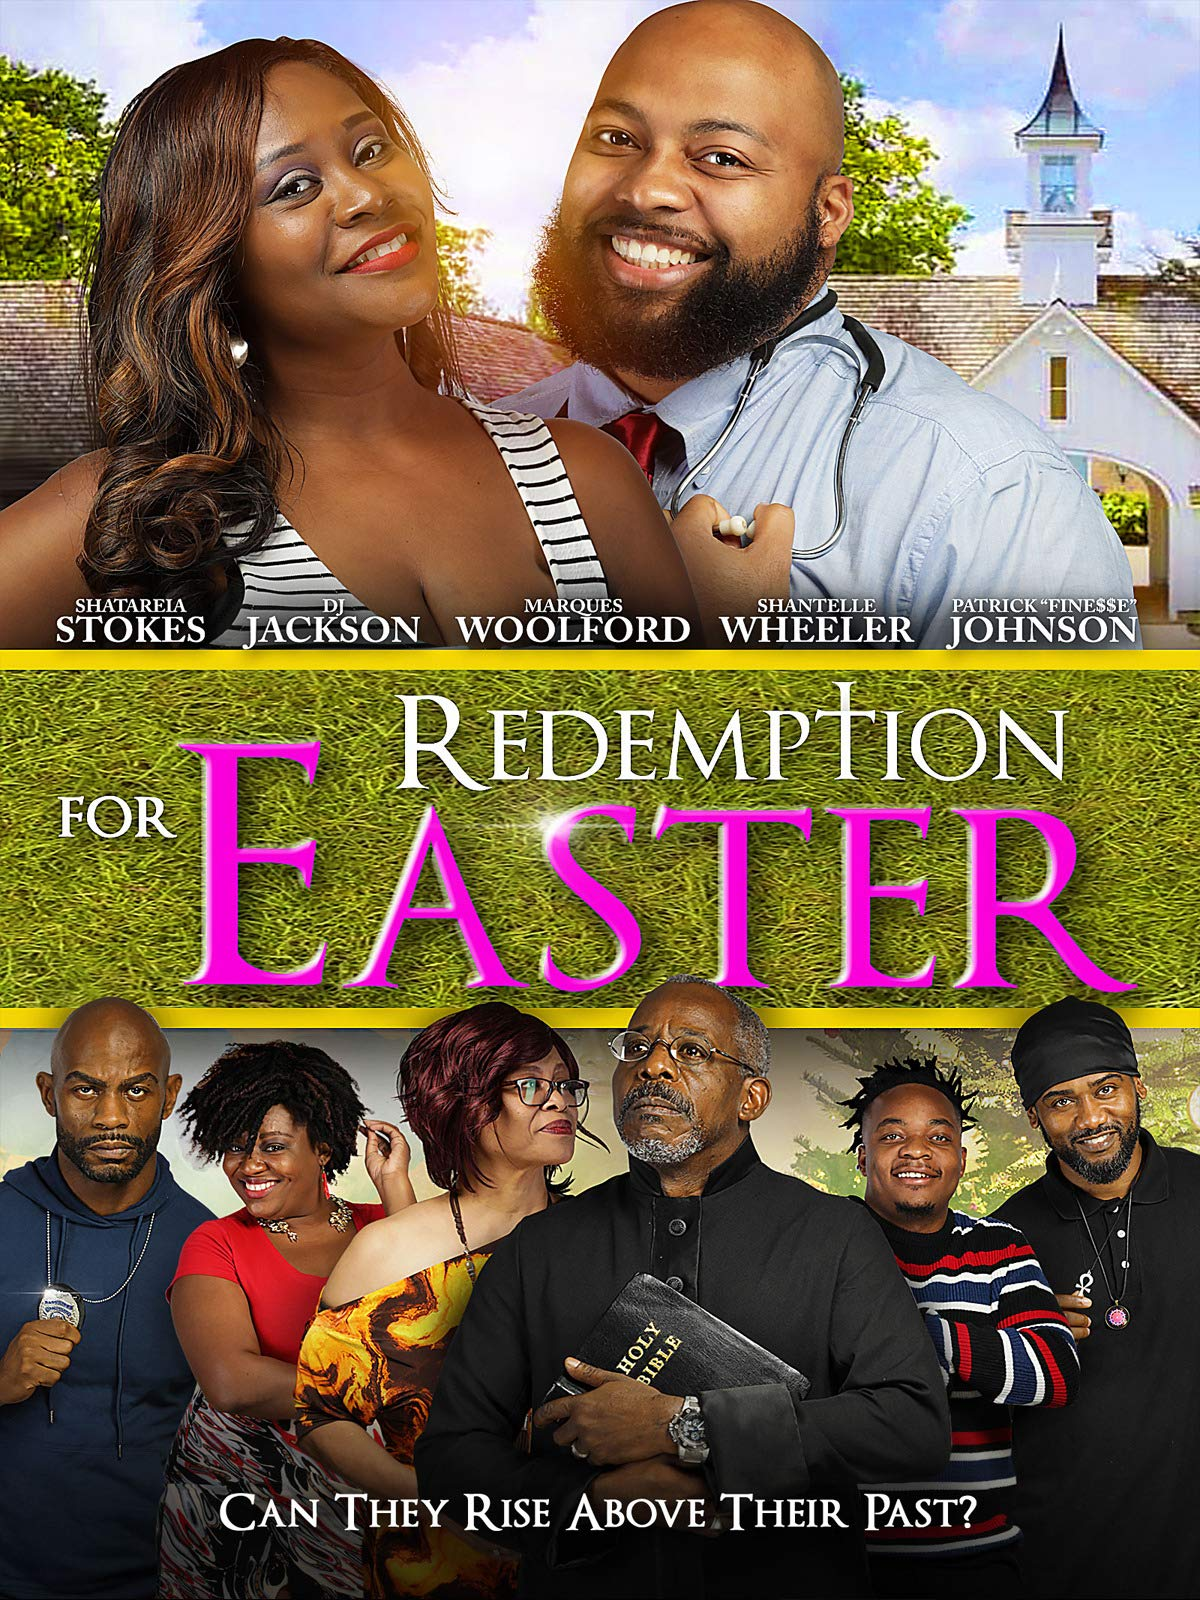 Download Redemption for Easter (2021) WebRip 720p Full Movie [In English] With Hindi Subtitles Full Movie Online On 1xcinema.com